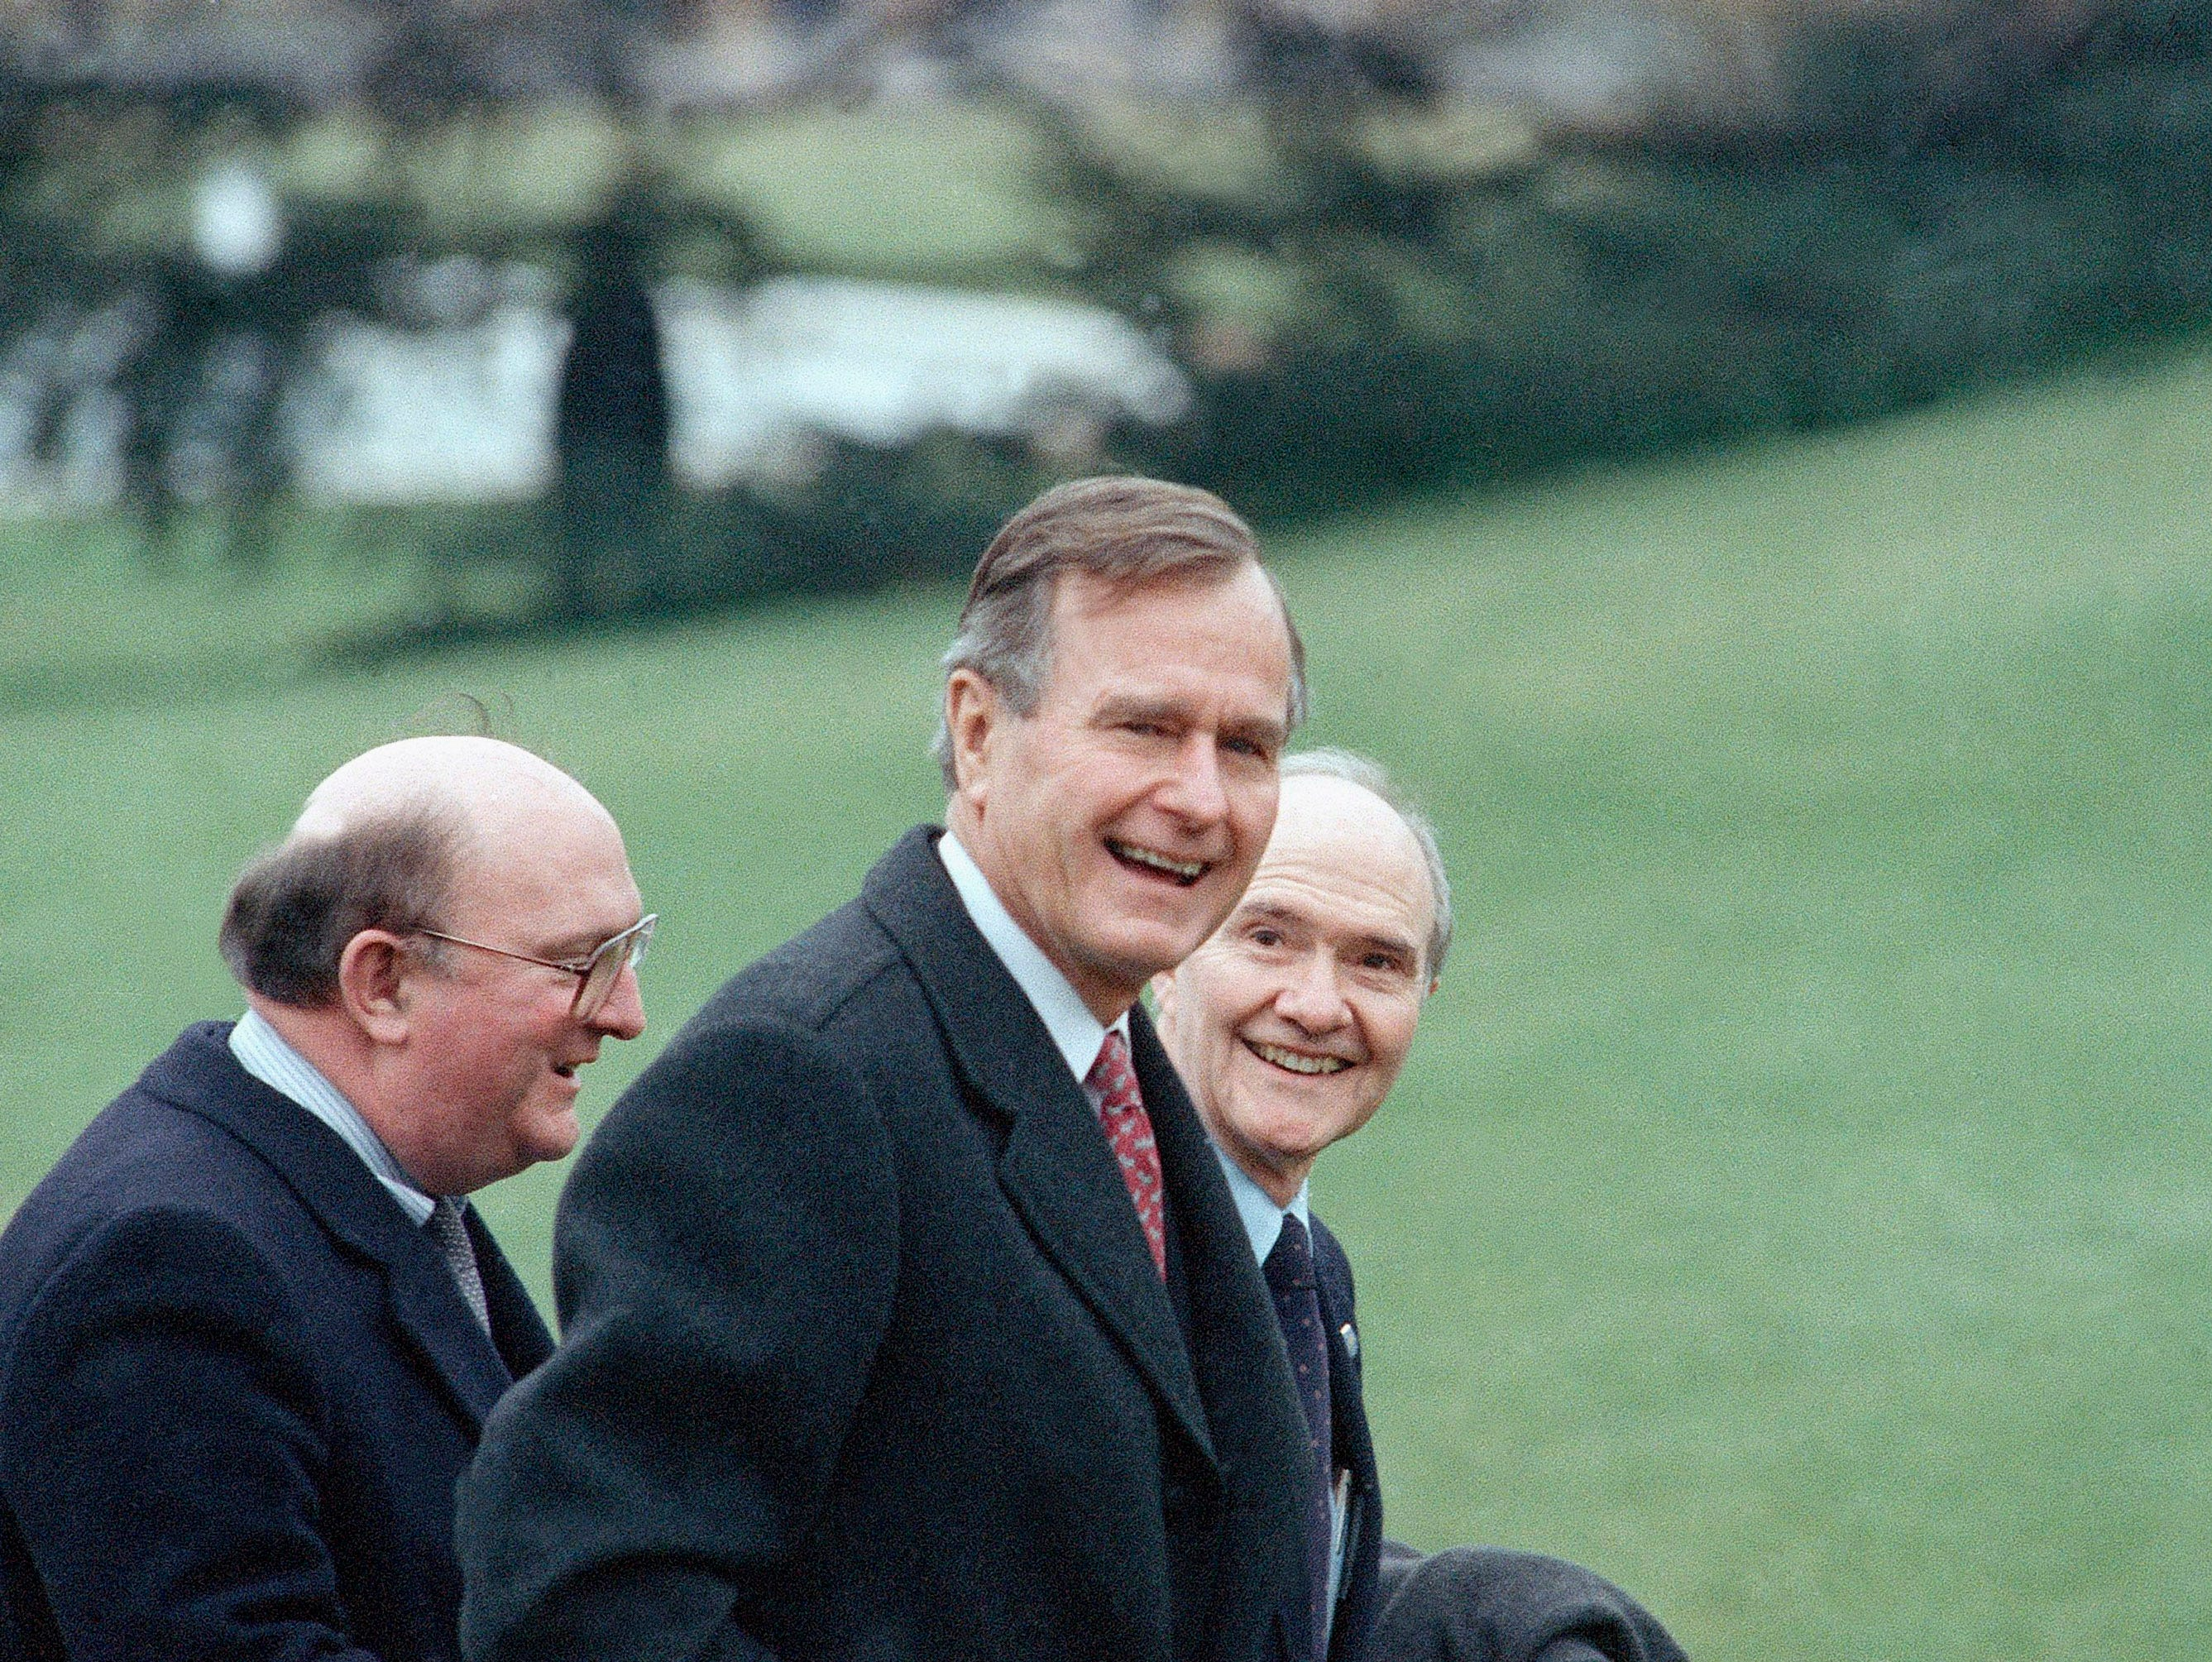 Pres. George H. W. Bush, center, arrives back at the White House in a light snow with National Security Adviser Brent Scowcroft, right, and Press Secretary Marlin Fitzwater after a speech in Manchester, N.H., Monday, Feb. 13, 1989, Washington, D.C. (AP Photo/Charles Tasnadi)